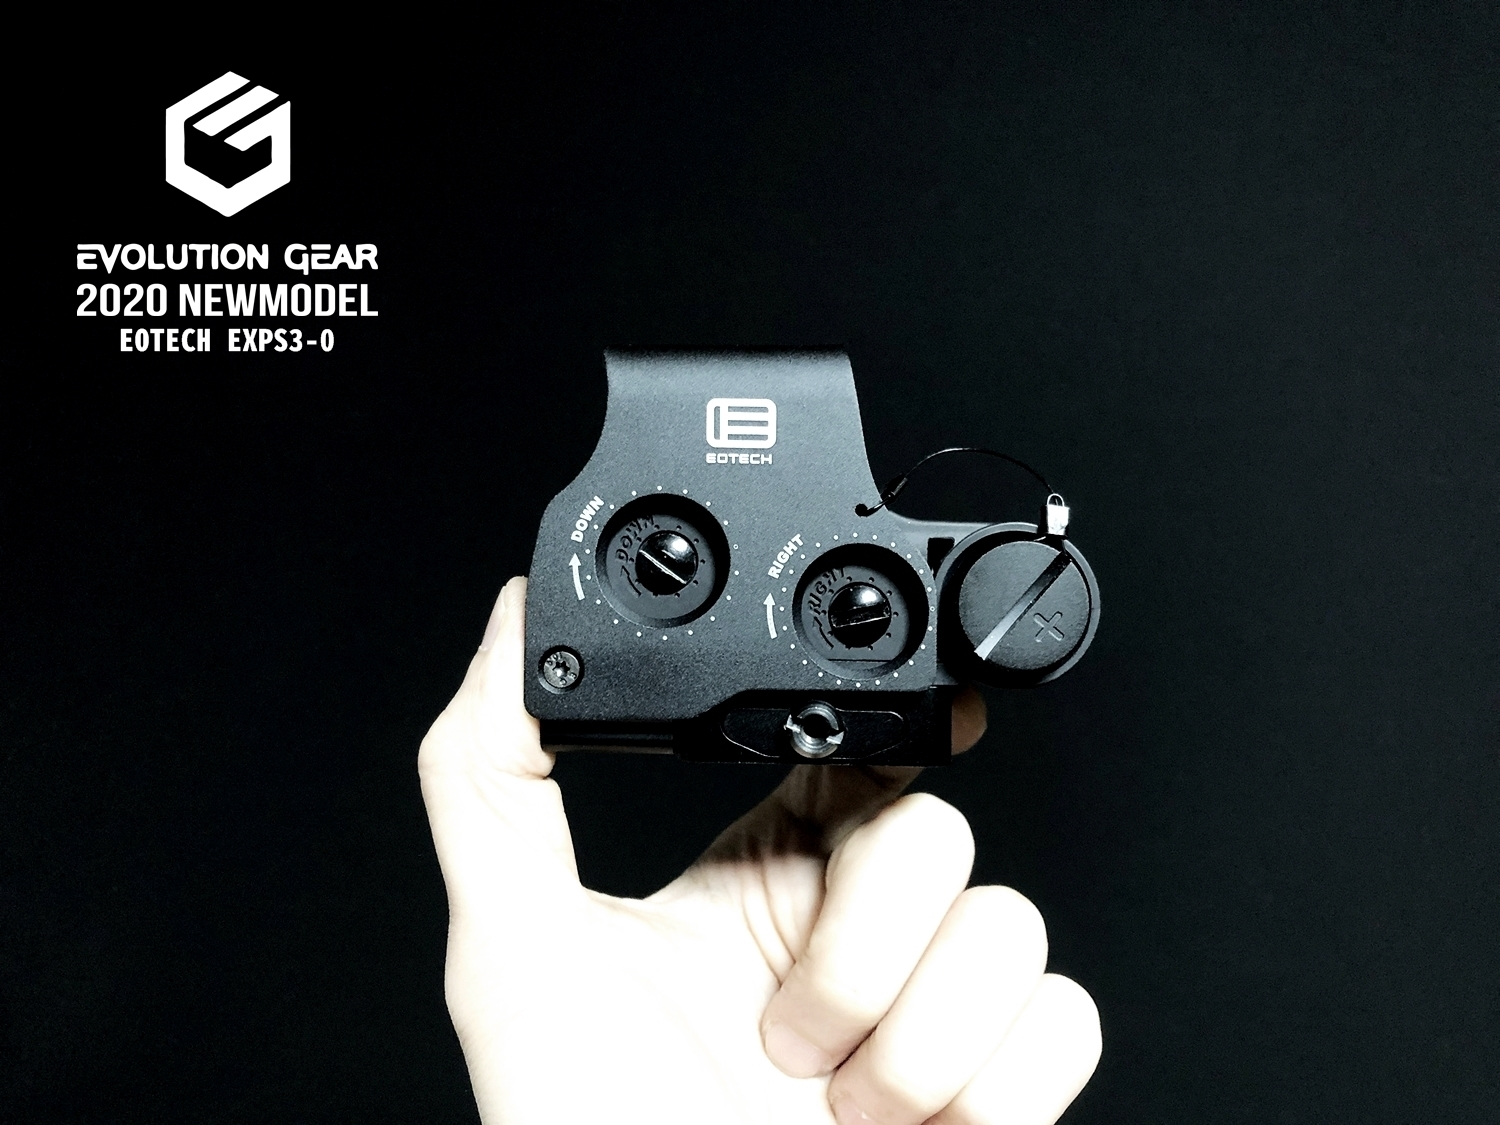 0 EVOLUTION GEAR 2020 改良版 EOTech EXPS3-0 NEW!! 最新リアルバージョンの改良点を徹底検証だ!! 新エボギア & 旧エボギア & 実物 イオテック ホロサイト!! 開封 比較 検証 取付 レビュー!!